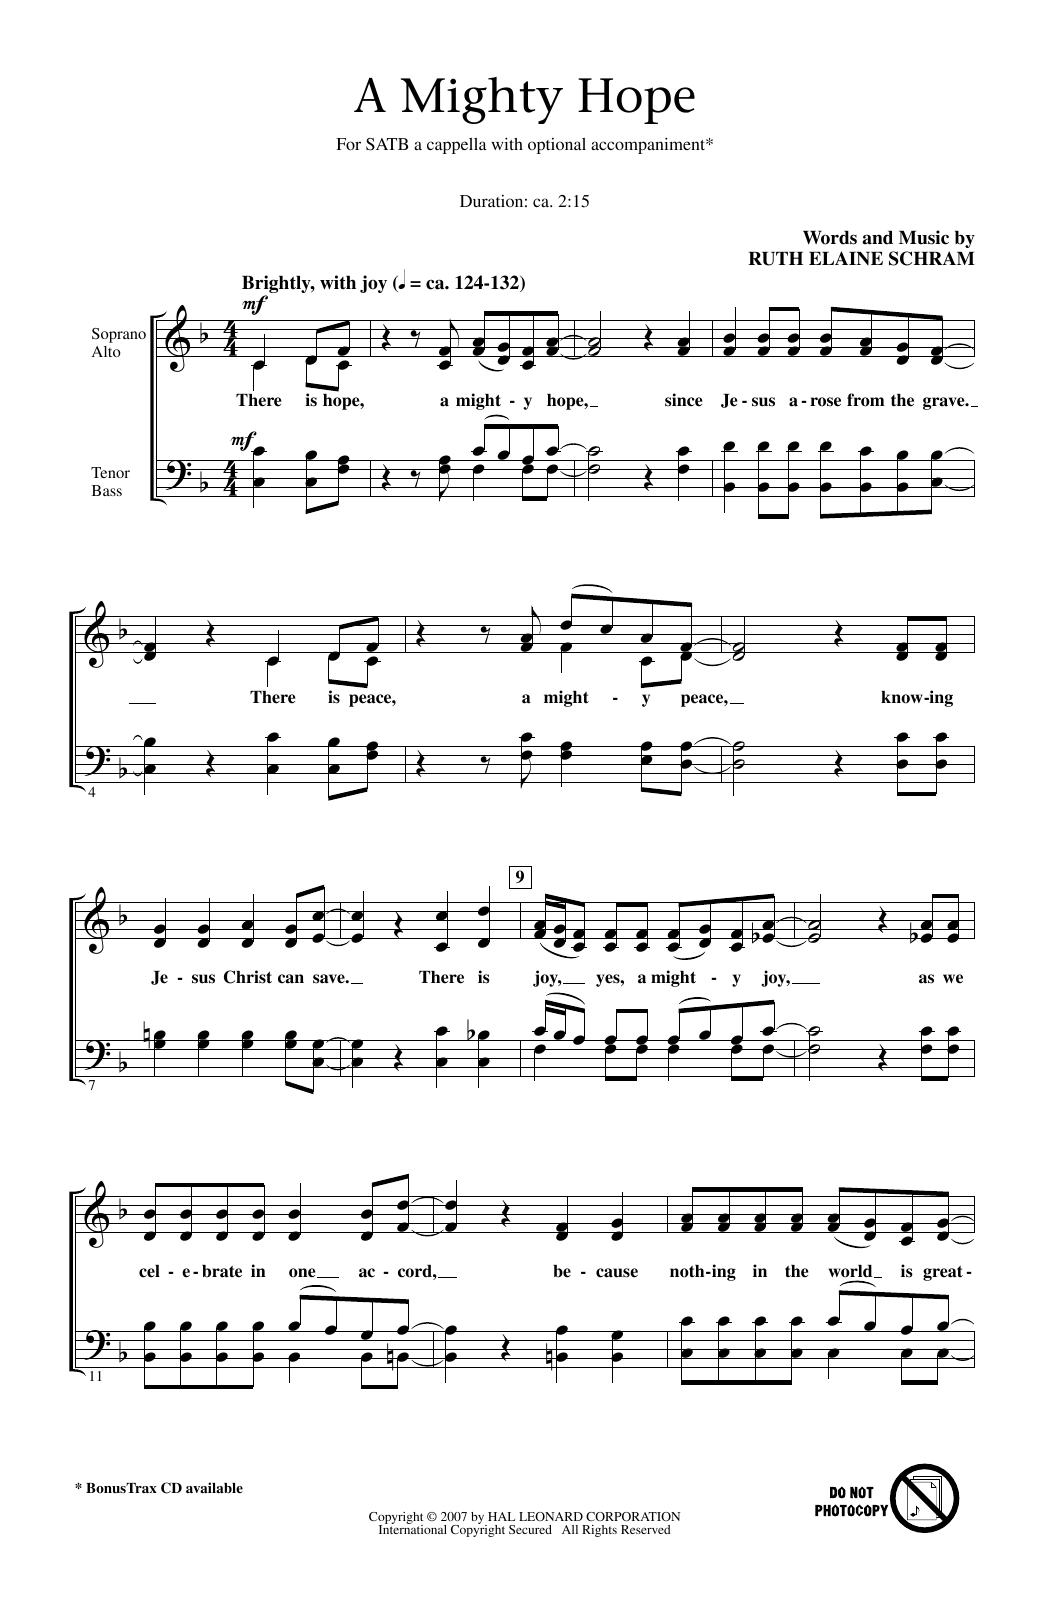 A Mighty Hope Sheet Music